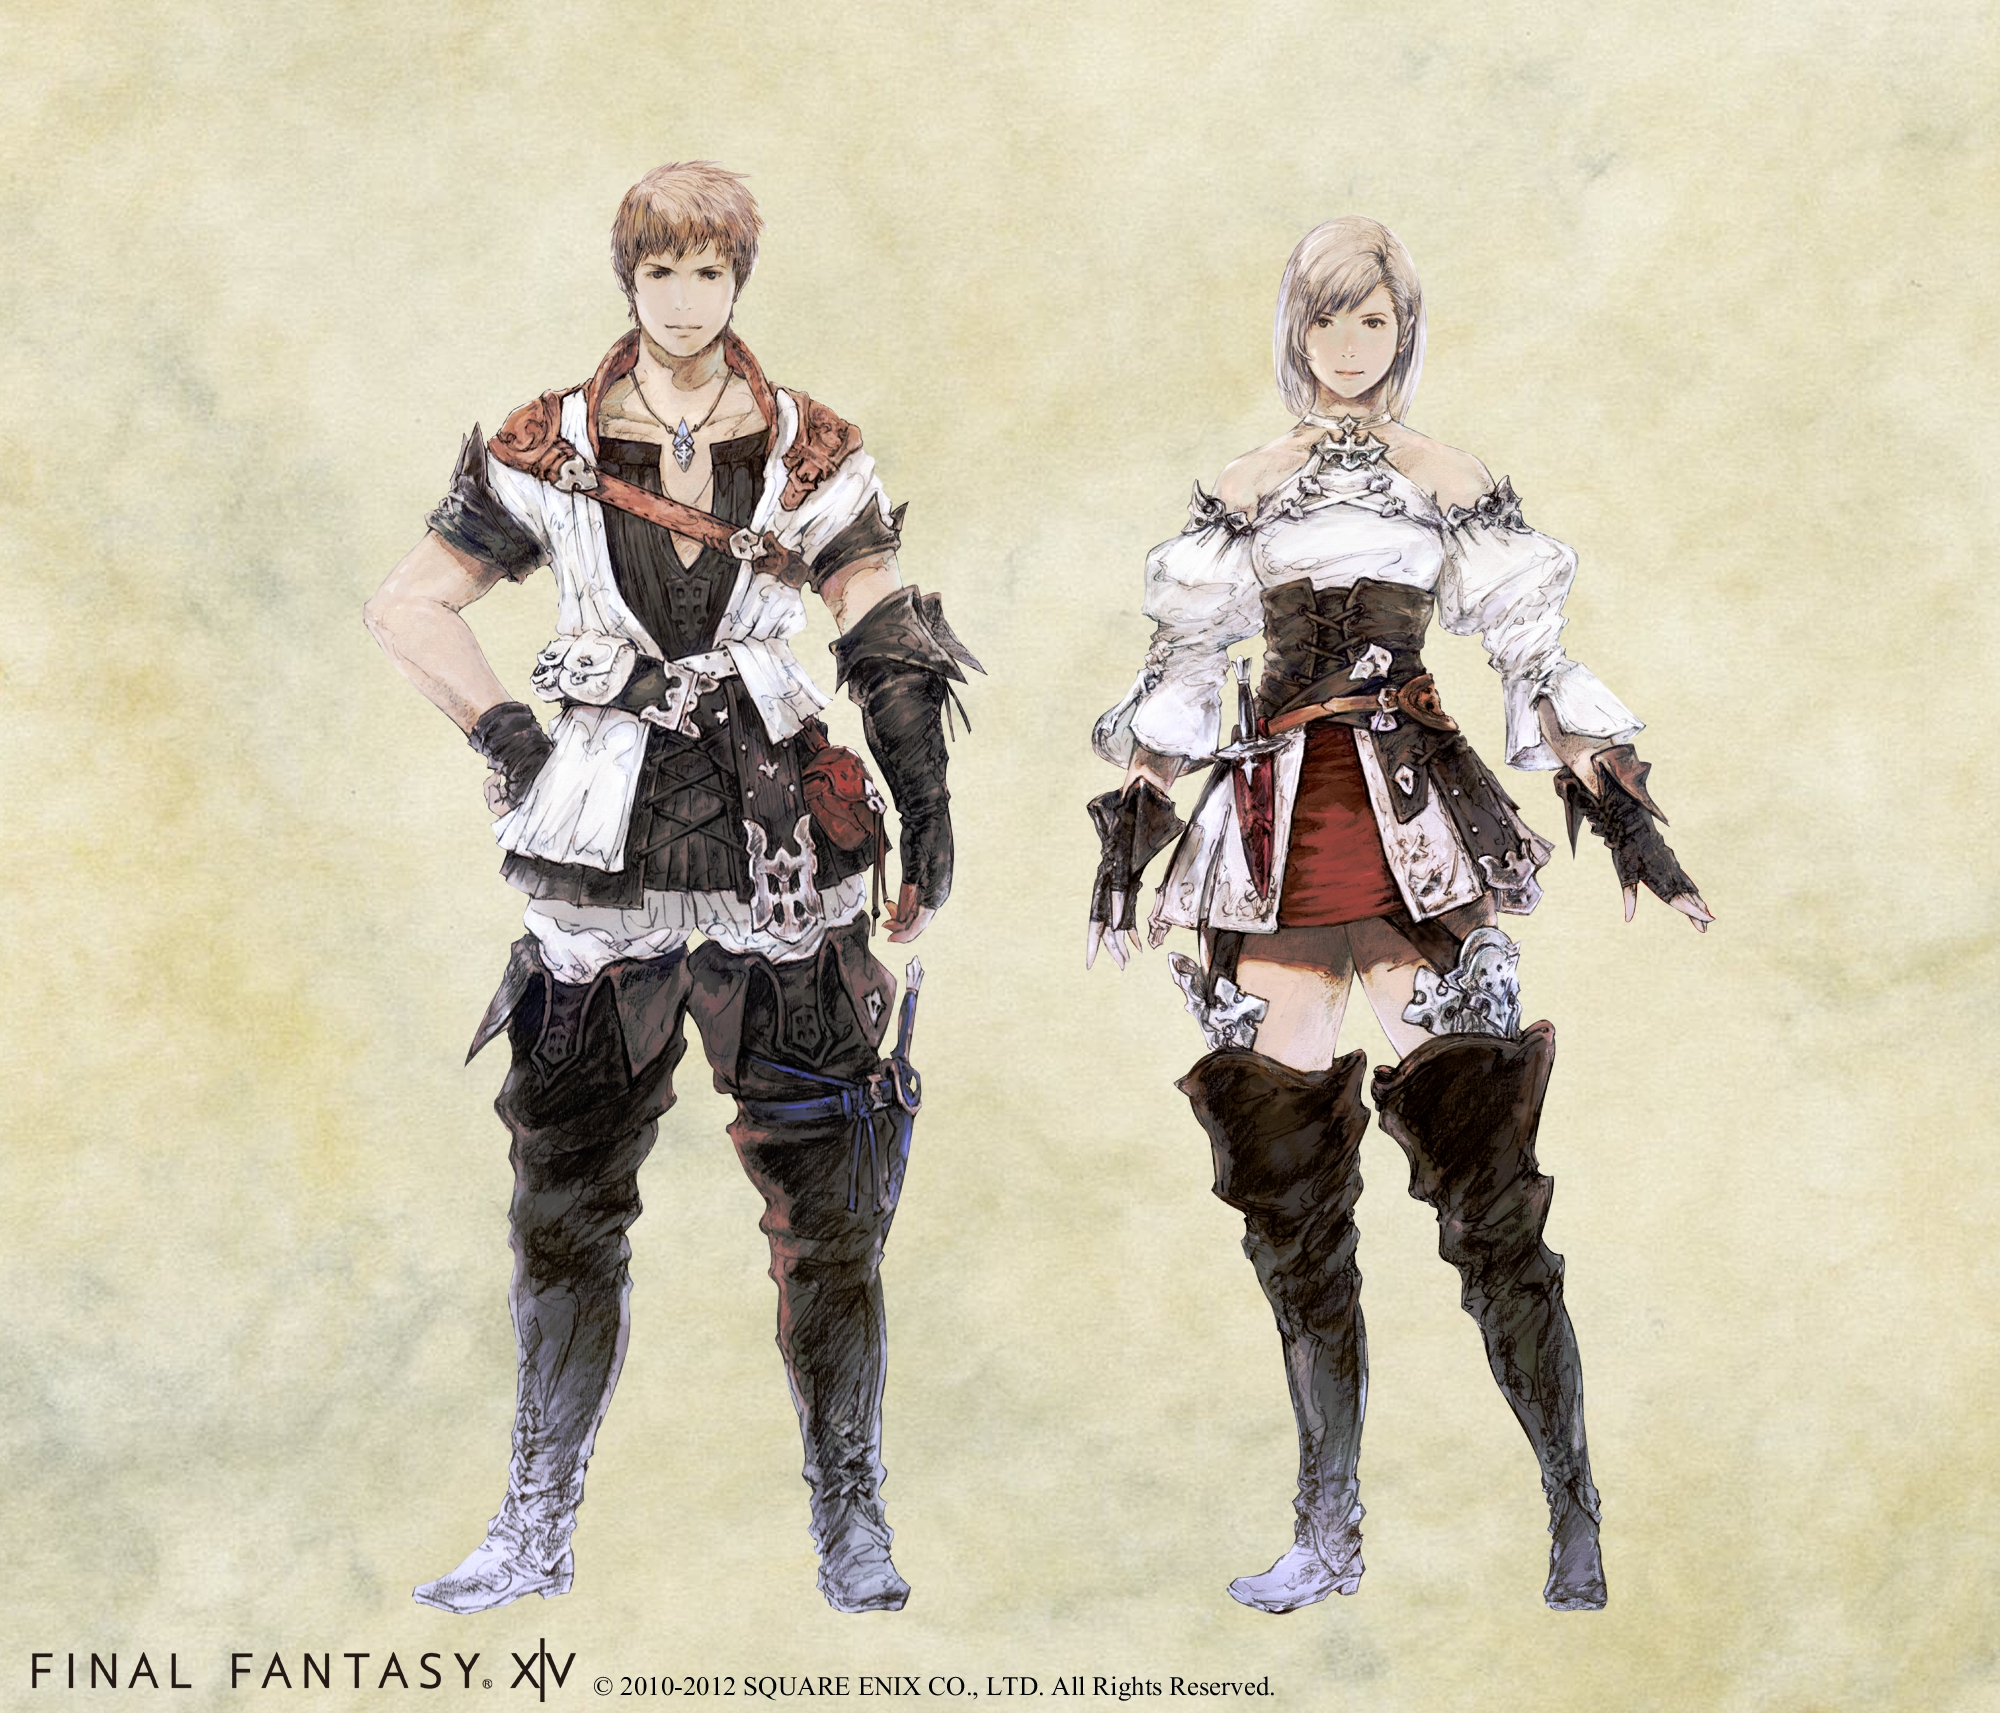 Final Fantasy XIV 2.0 Character Classes Introduced and New Artwork ...